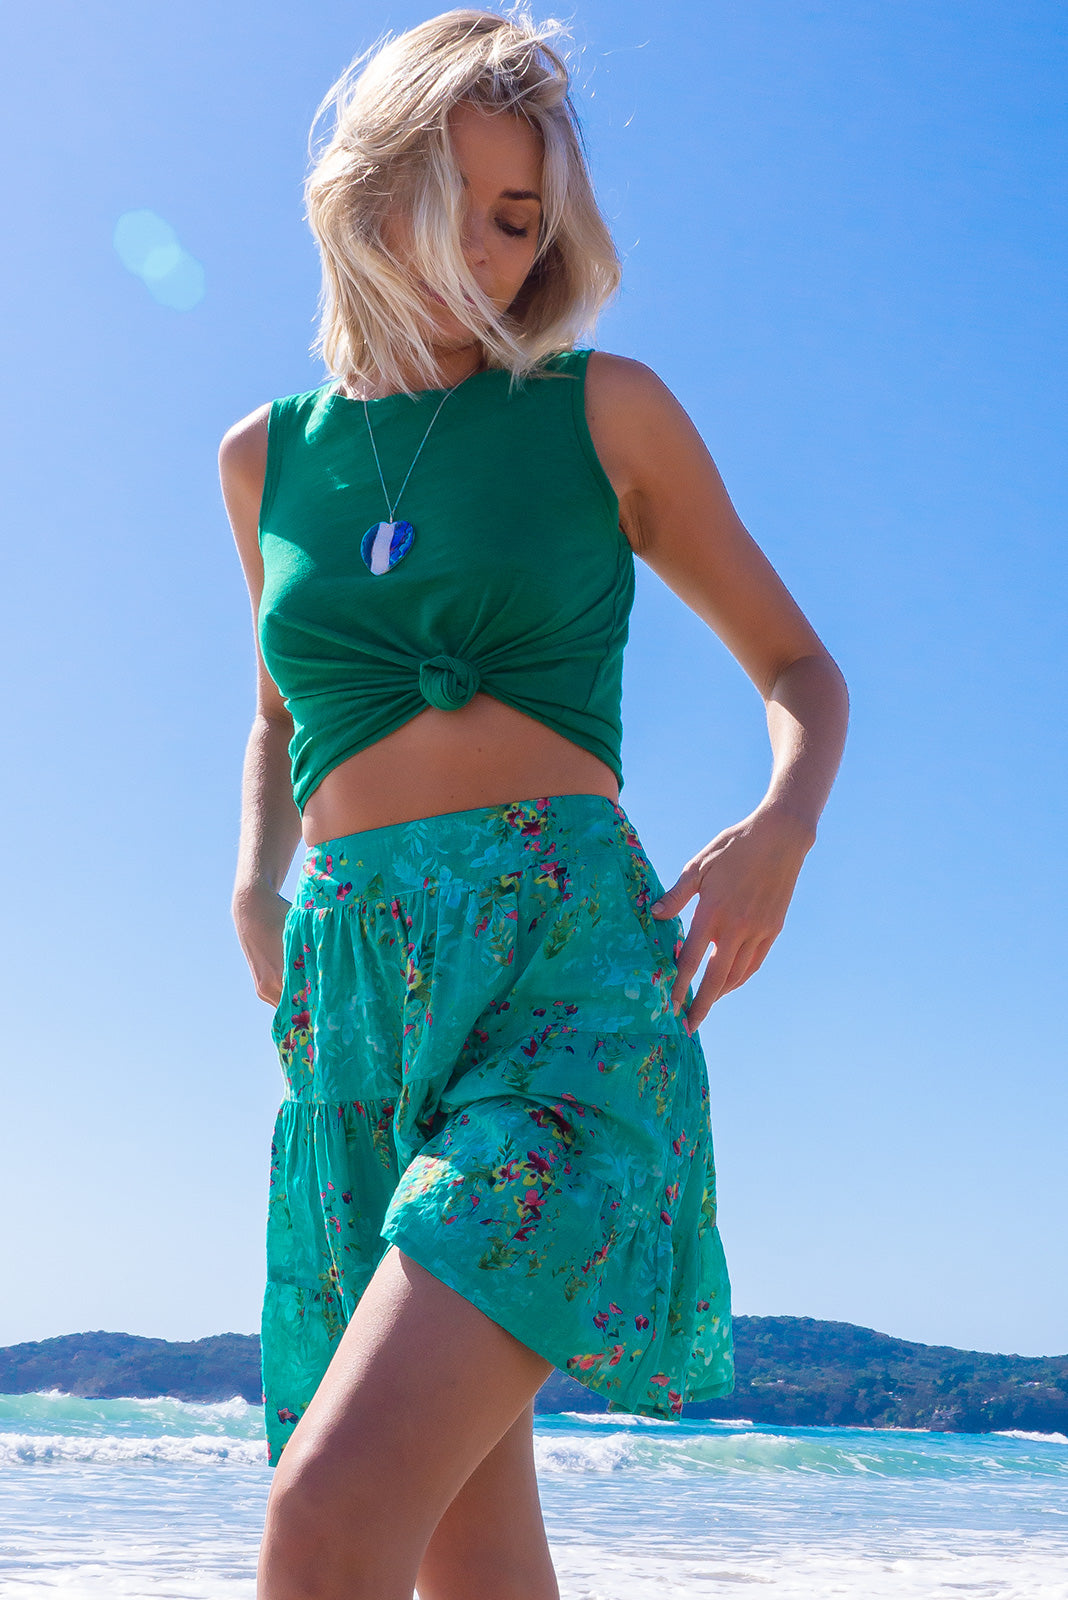 The Valencia Sea Glass Green Mini Skirt features elasticated back waistband, comfortable pull-on style, tiered for flirty fullness, side pockets and 100% cotton in green base with wash effect and watercolour print.